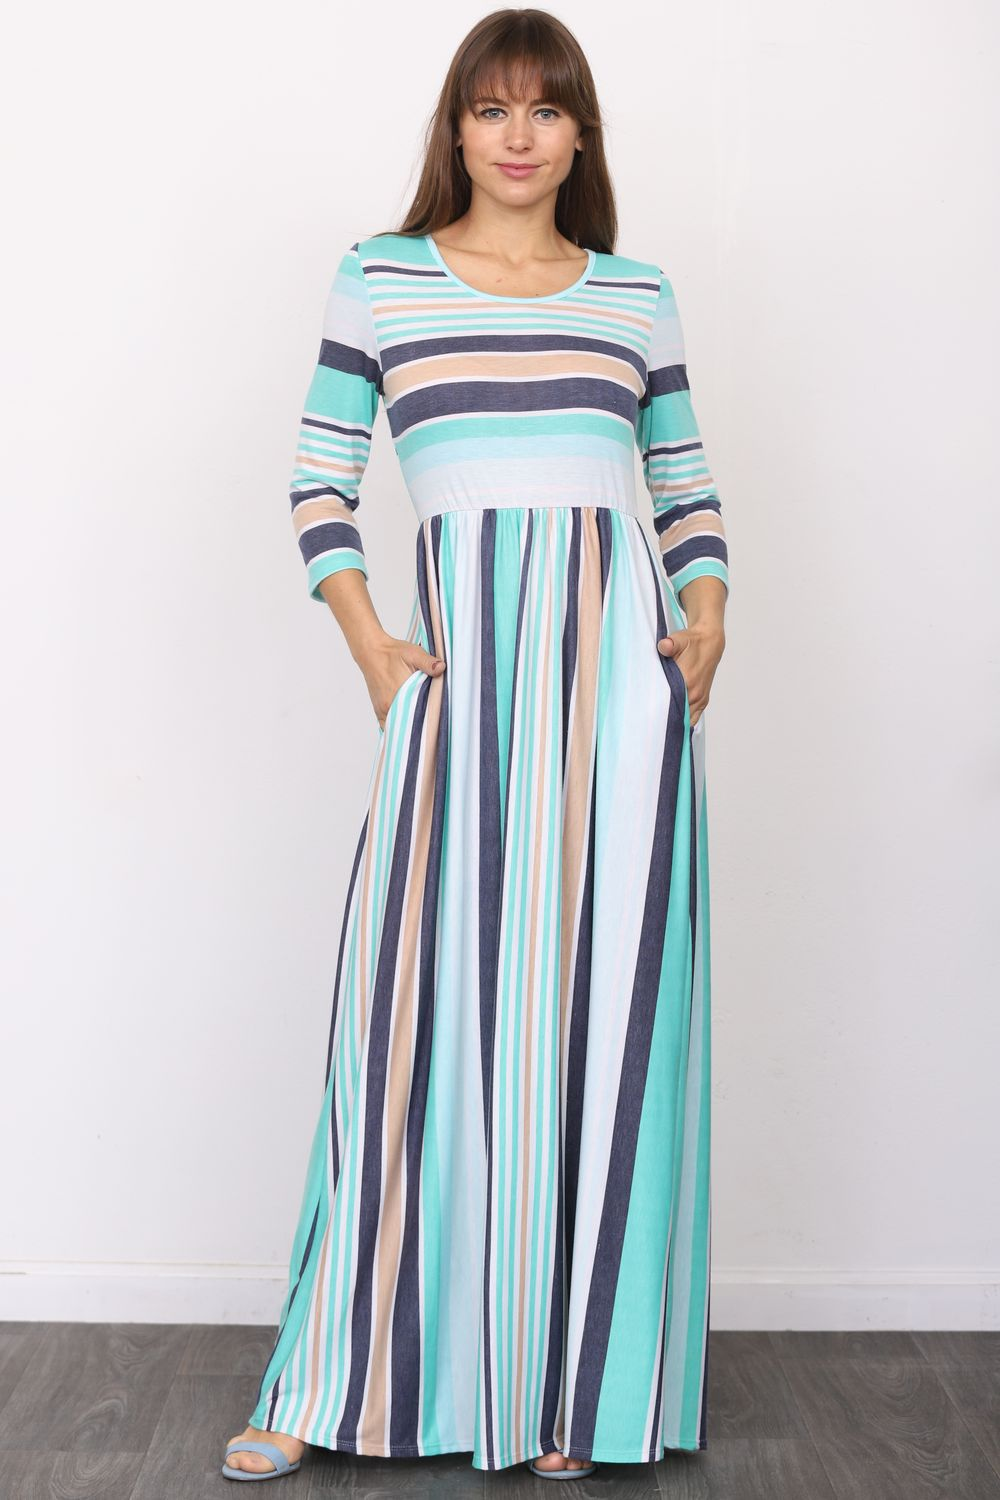 Aqua & Navy Stripe 3/4 Sleeve Maxi Dress